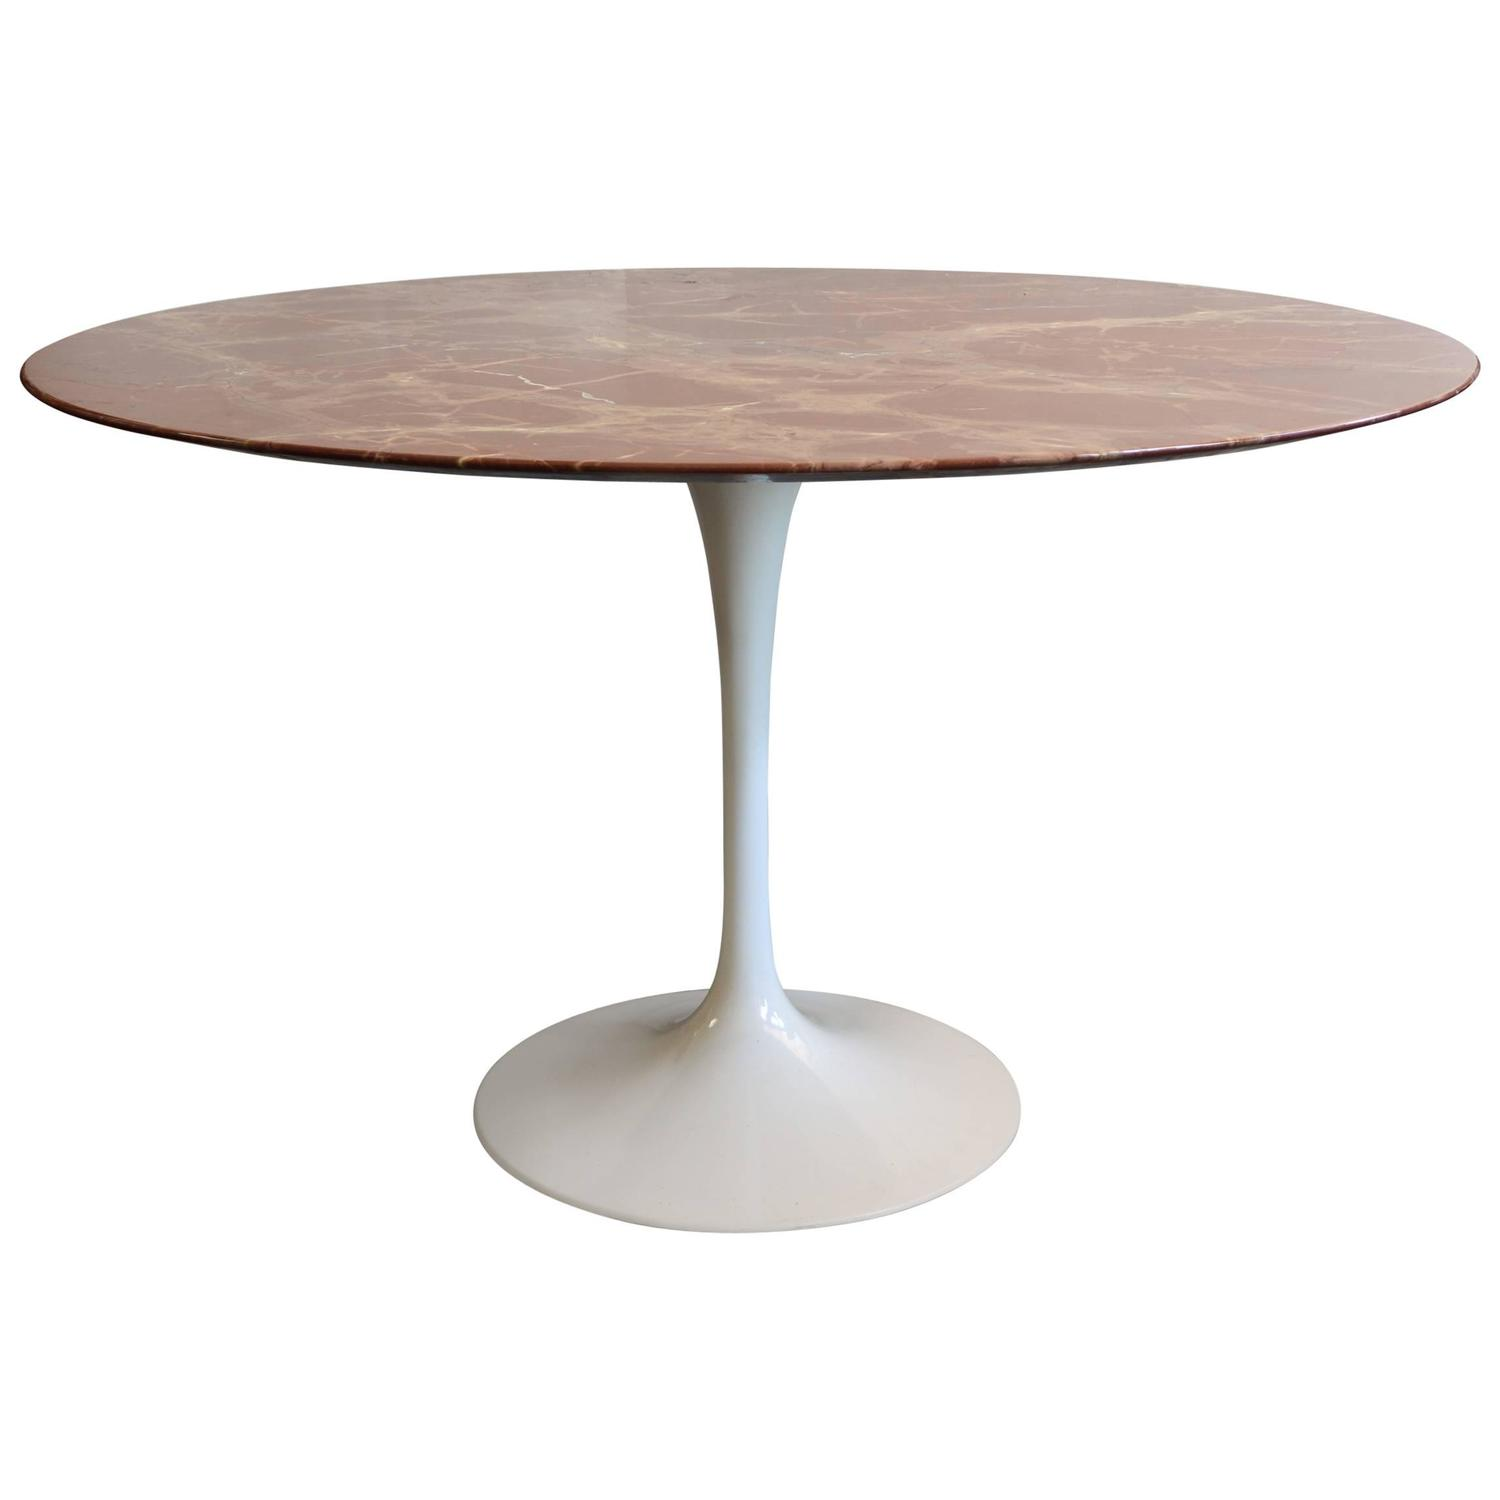 saarinen rose marble tulip dining table at 1stdibs ForTulip Dining Table